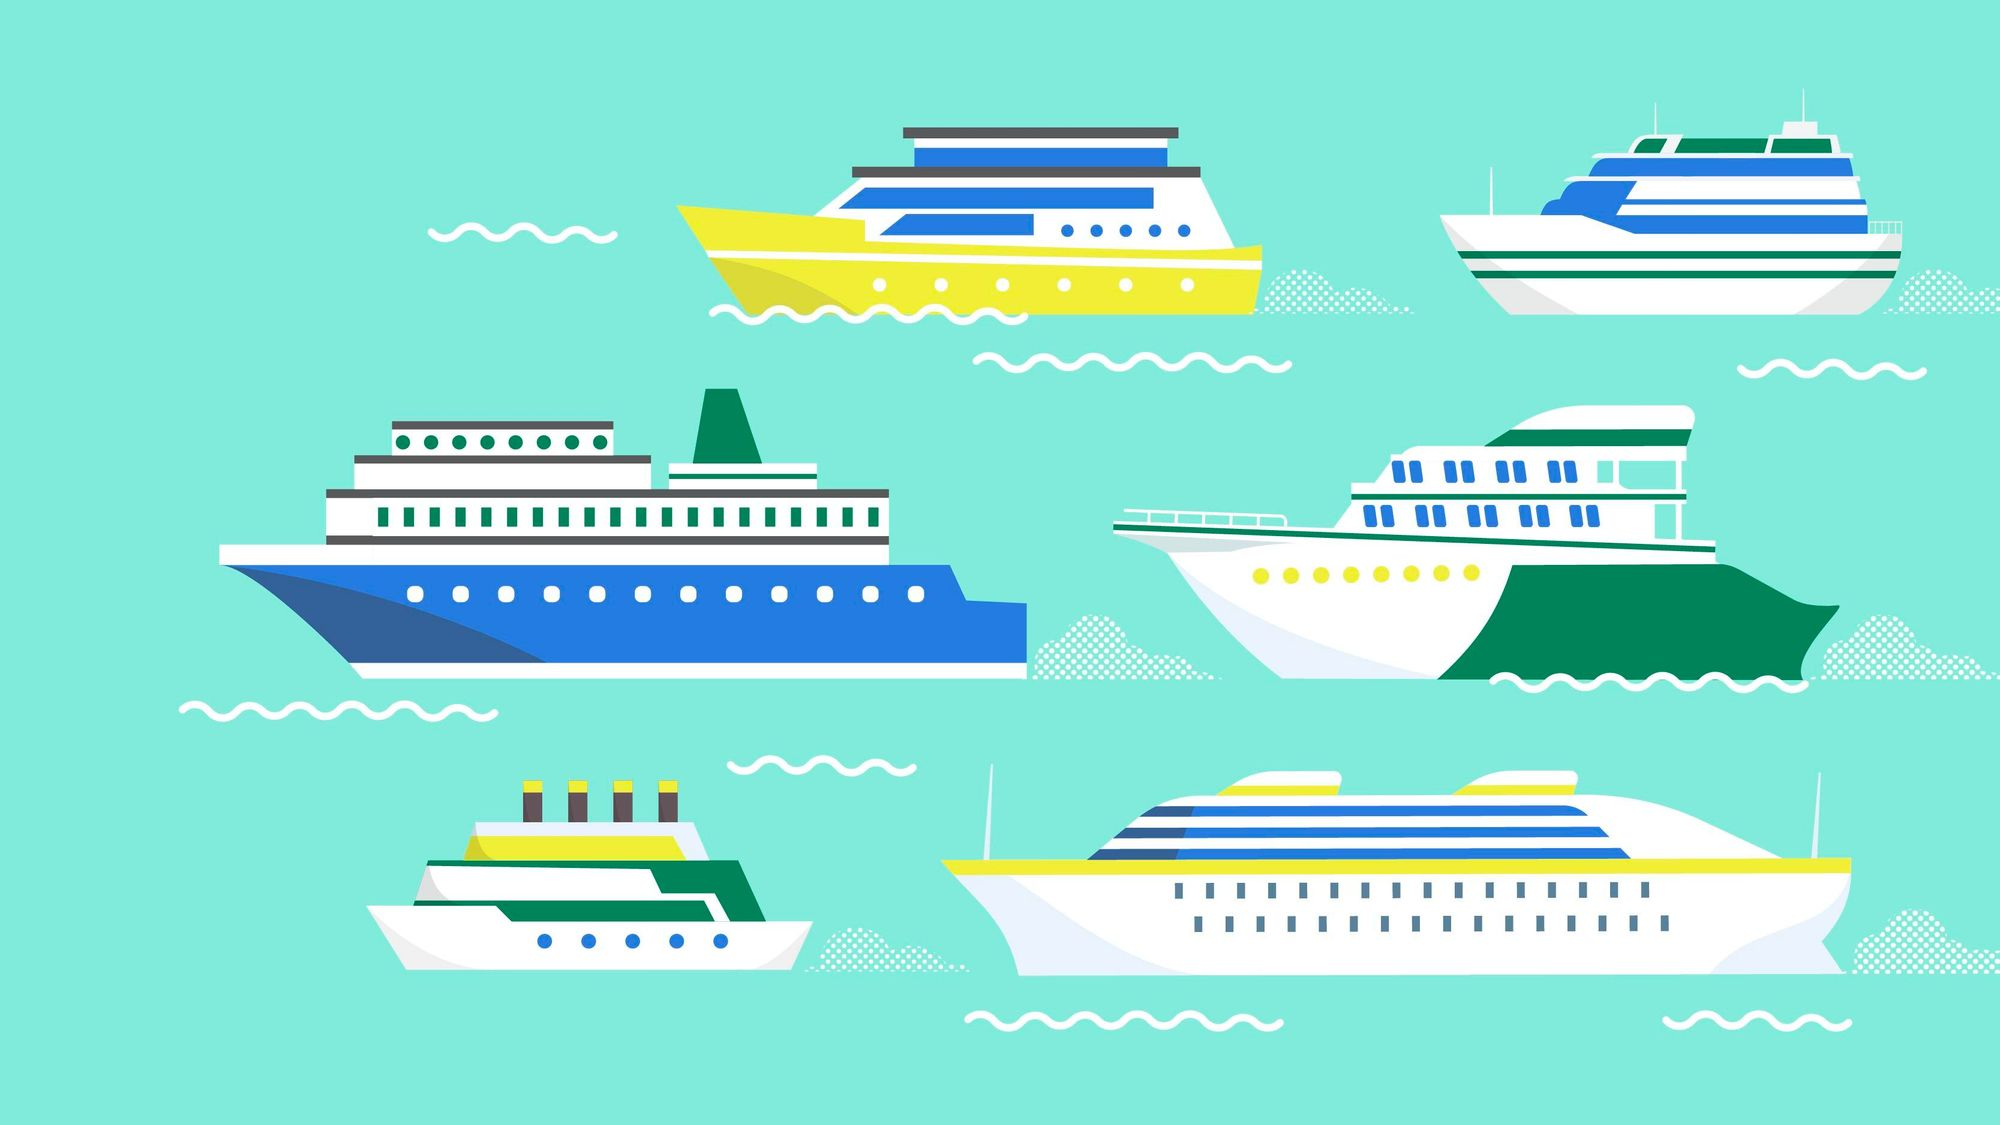 Graphic of several cruise ships